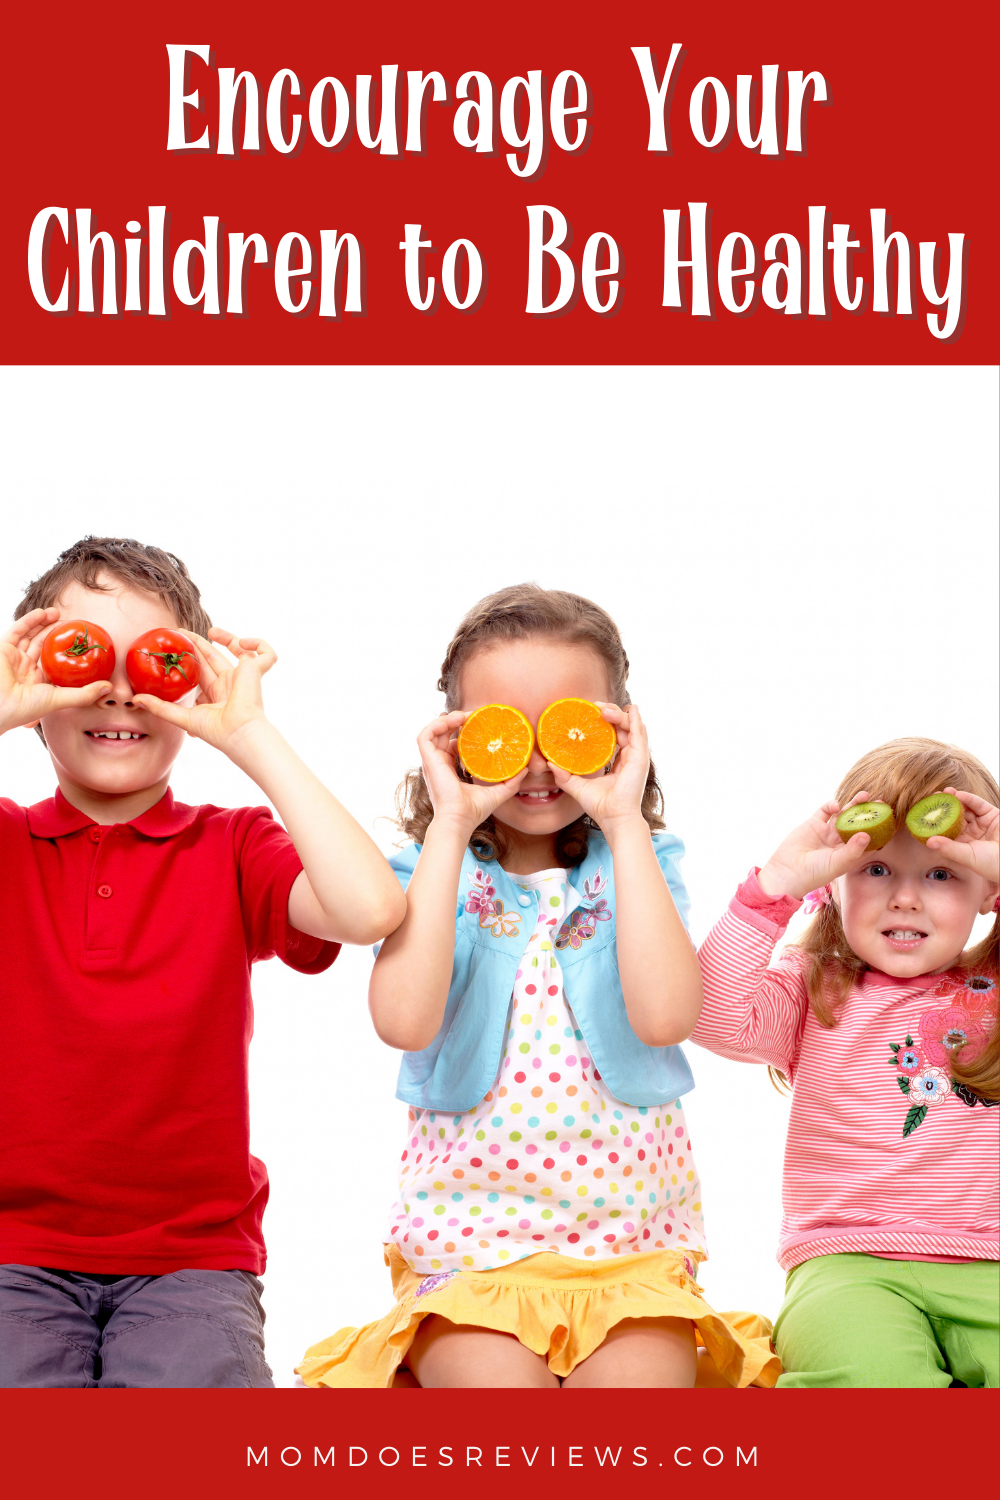 Encouraging Children To Be Healthy Isn't Easy, But It's Worth it